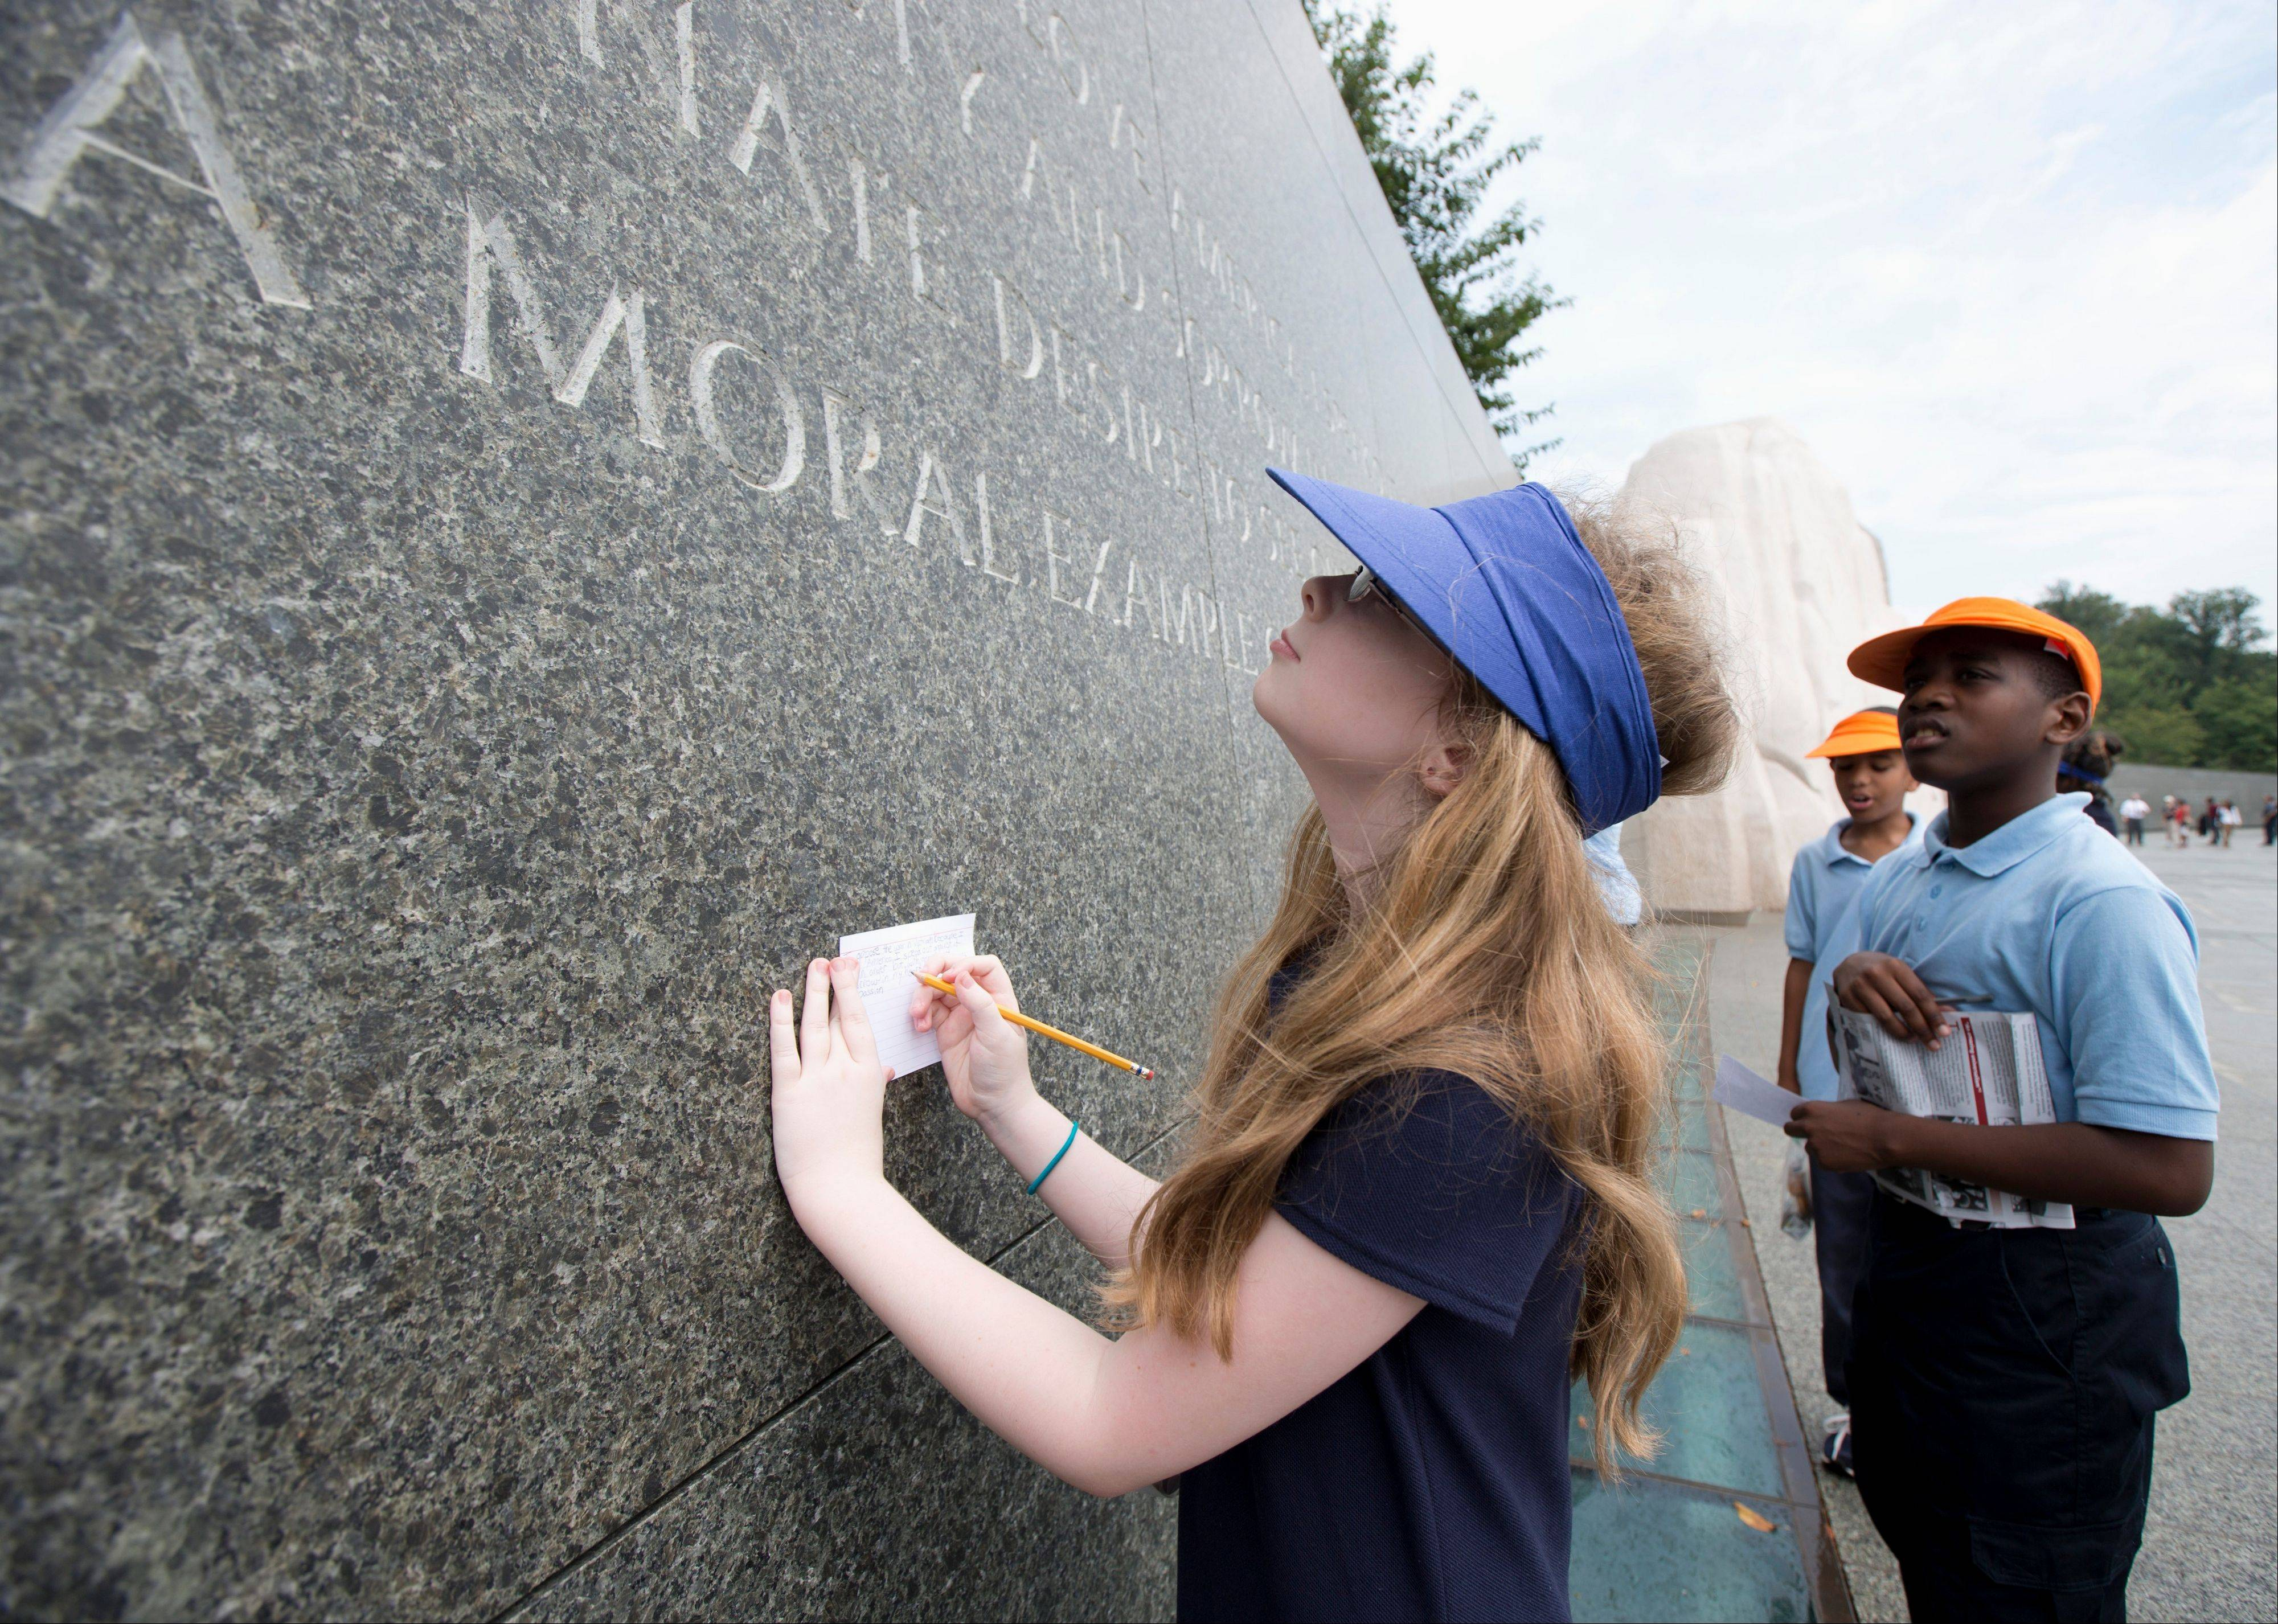 Brianna Renner, 11, left, and Morgan Koroma, 11, both from Cora Rich Elementary School in Prince Georges County, Md., read and write down quotes from Martin Luther King's speeches and writings, inscribed on the wall at the Martin Luther King Memorial in Washington.